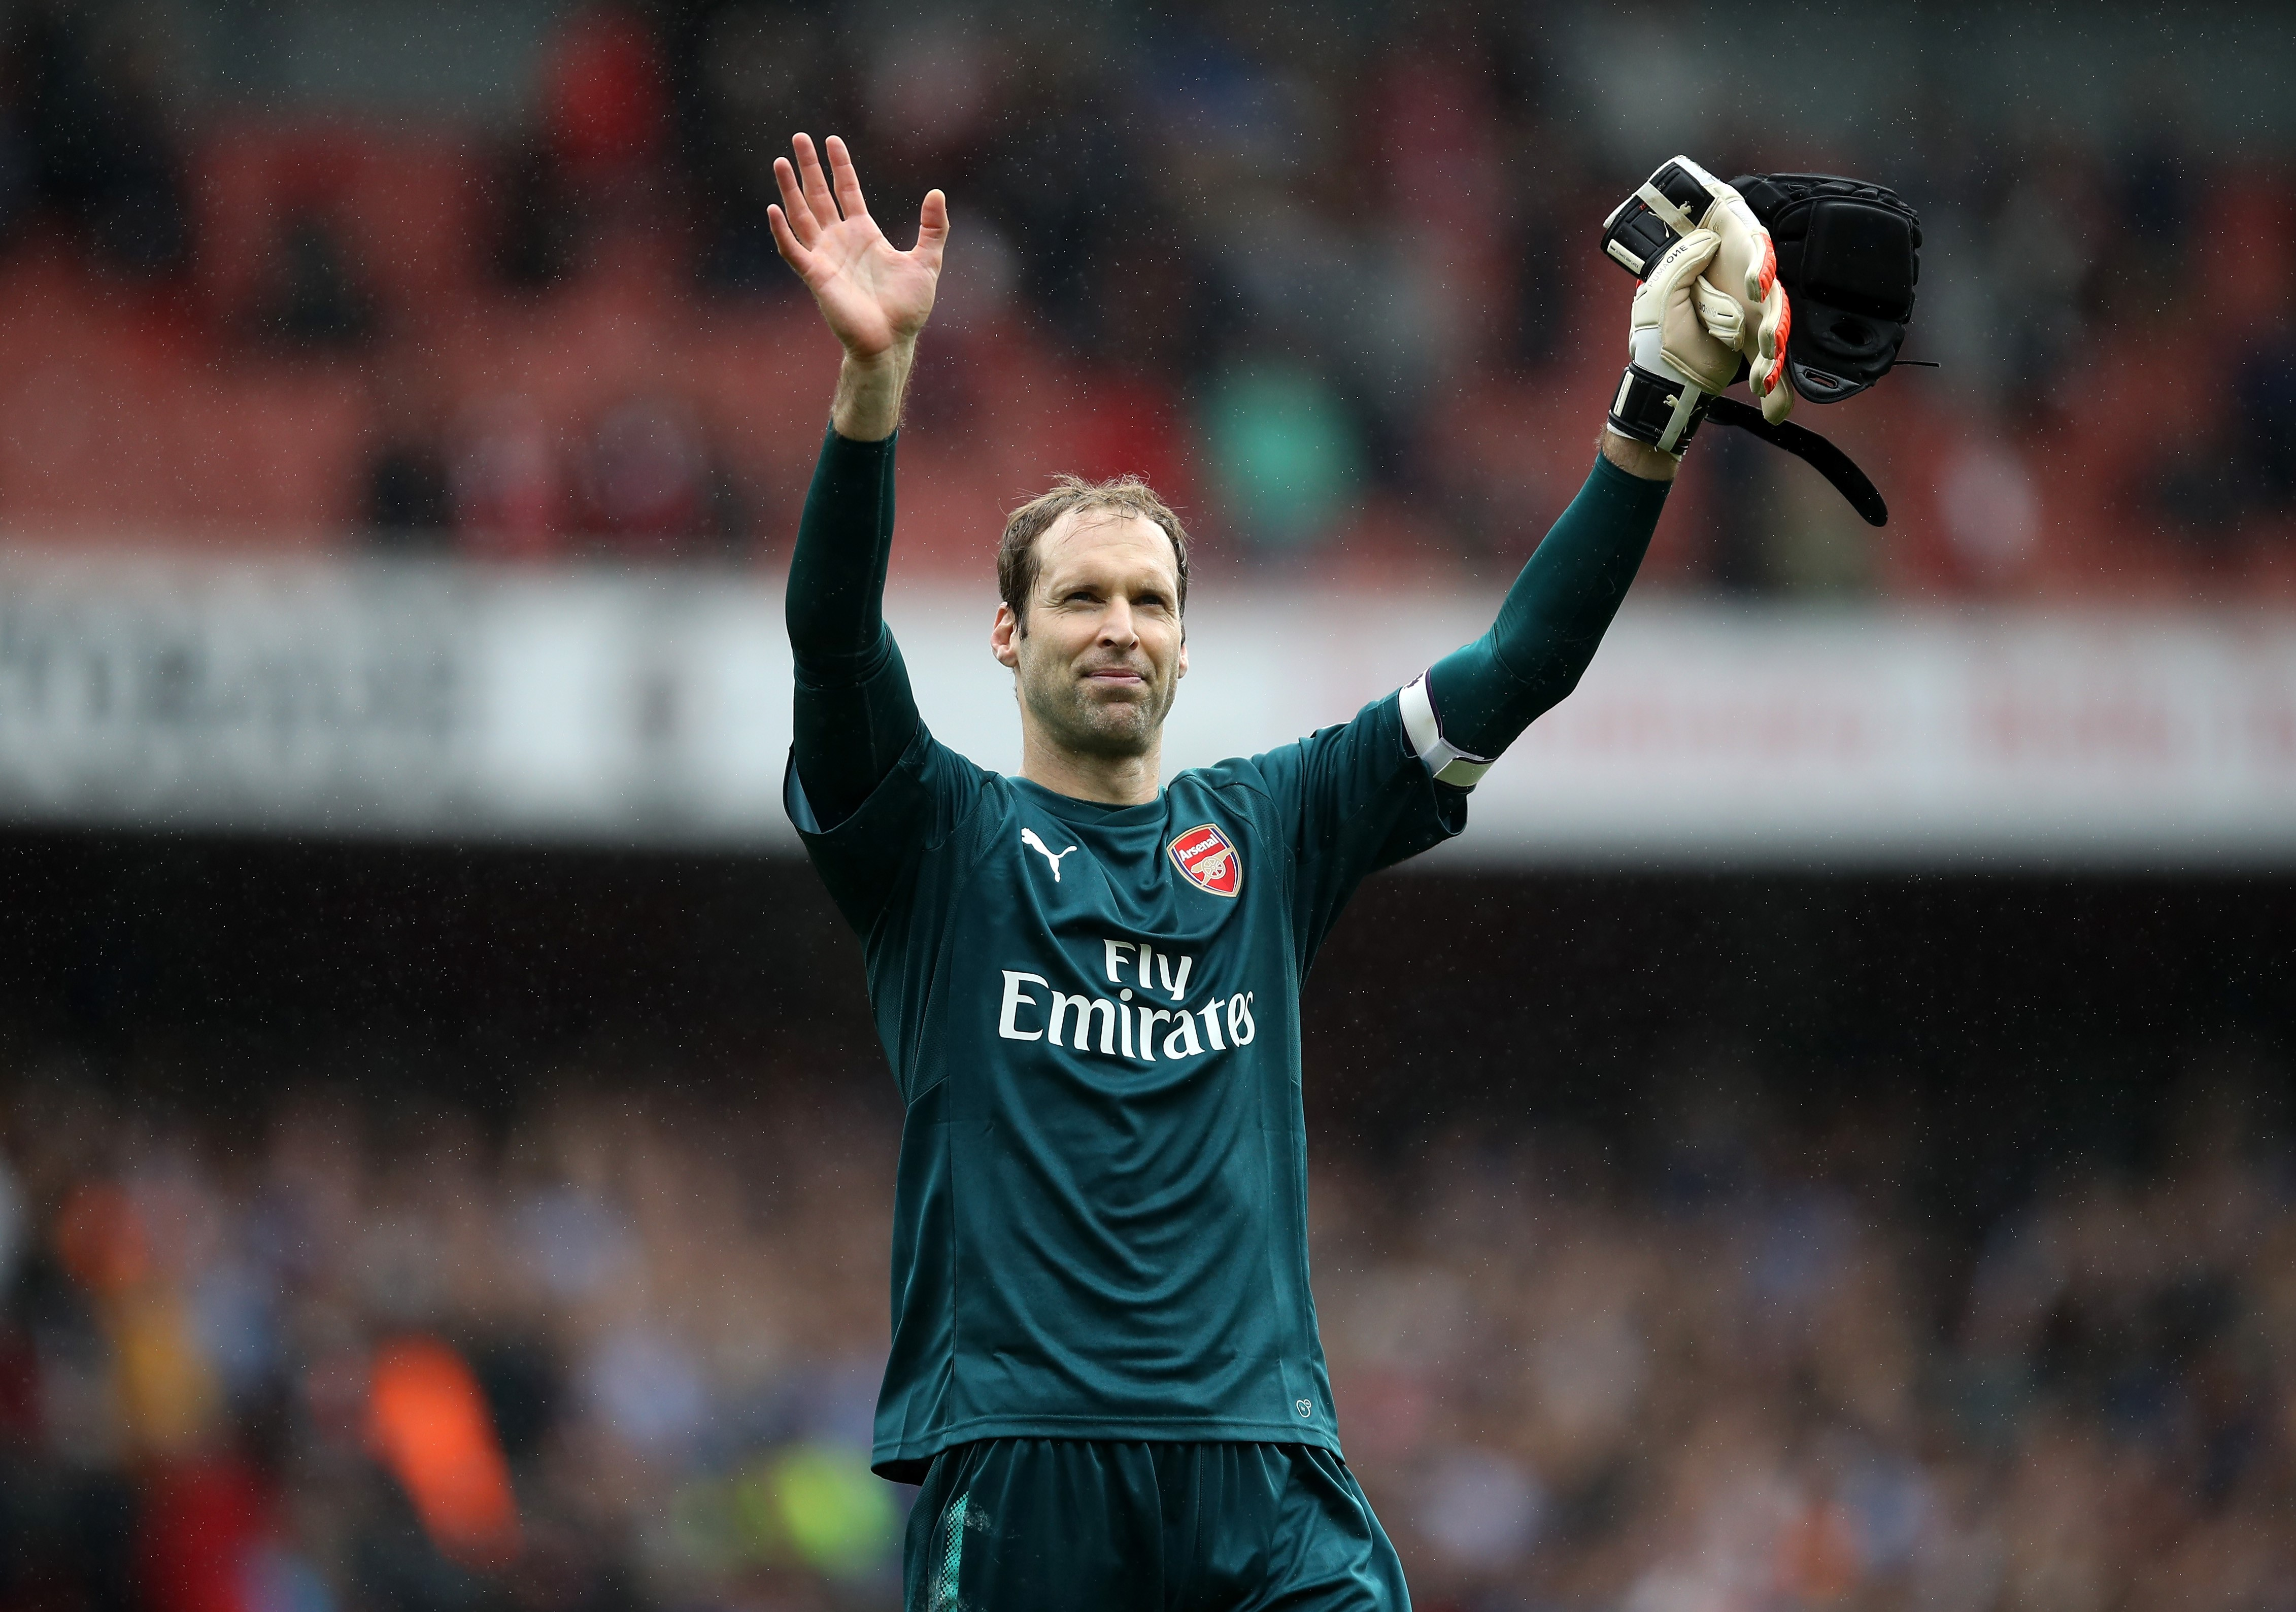 Petr Cech of Arsenal shows appreciation to the fans after the Premier League match between Arsenal and Brighton and Hove Albion at Emirates Stadium on October 1, 2017 in London, England.